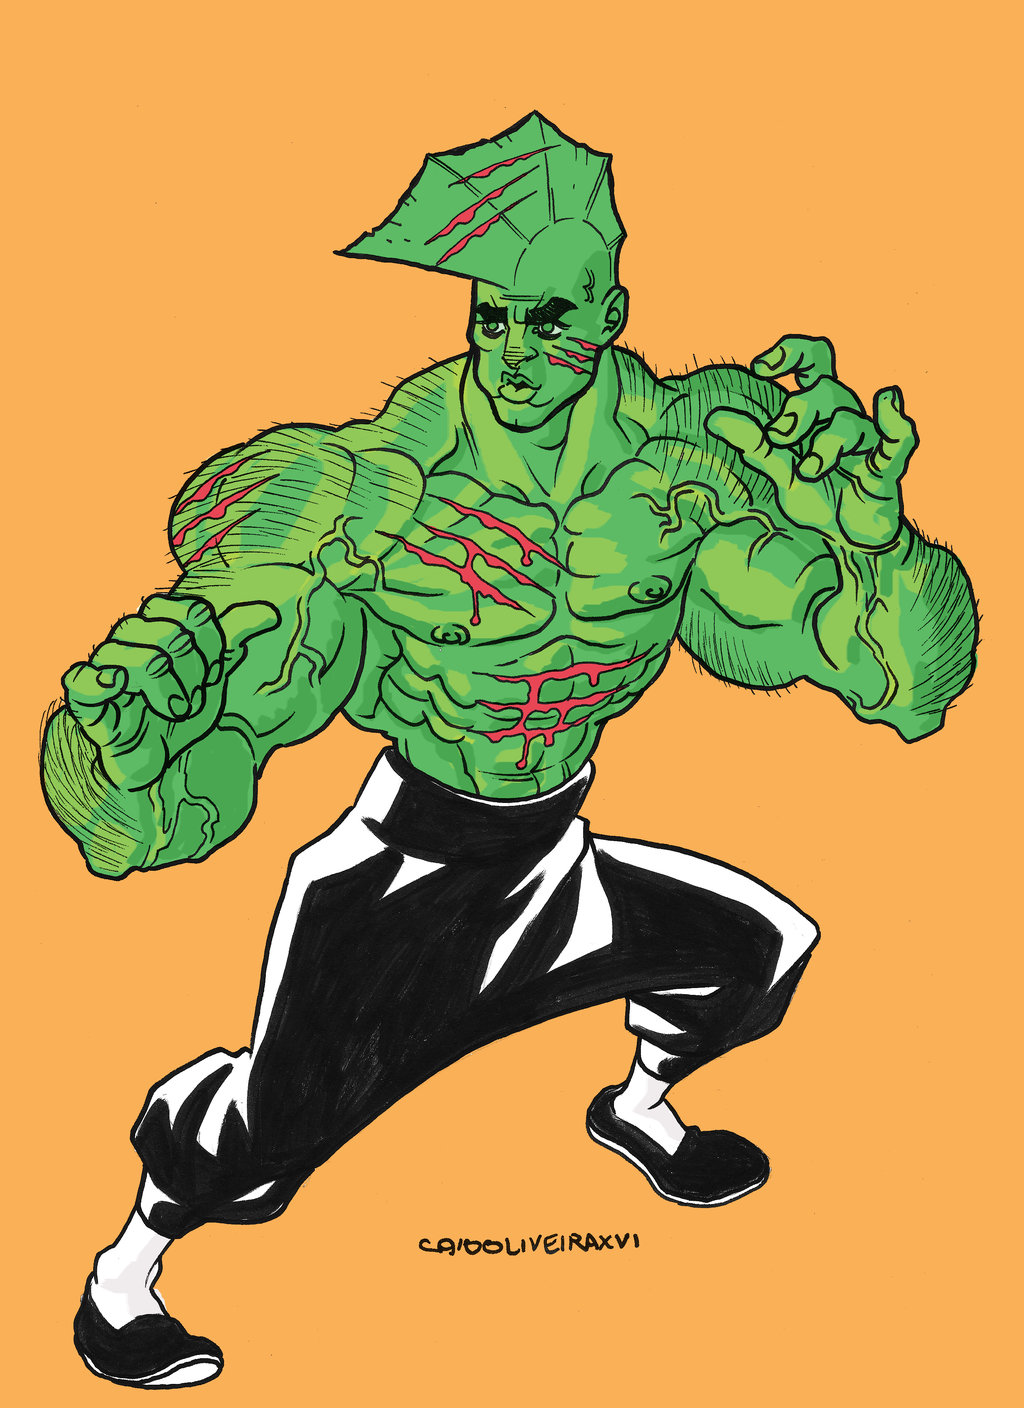 enter_the_savage_dragon_by_caiooliveira-d9ohnqh